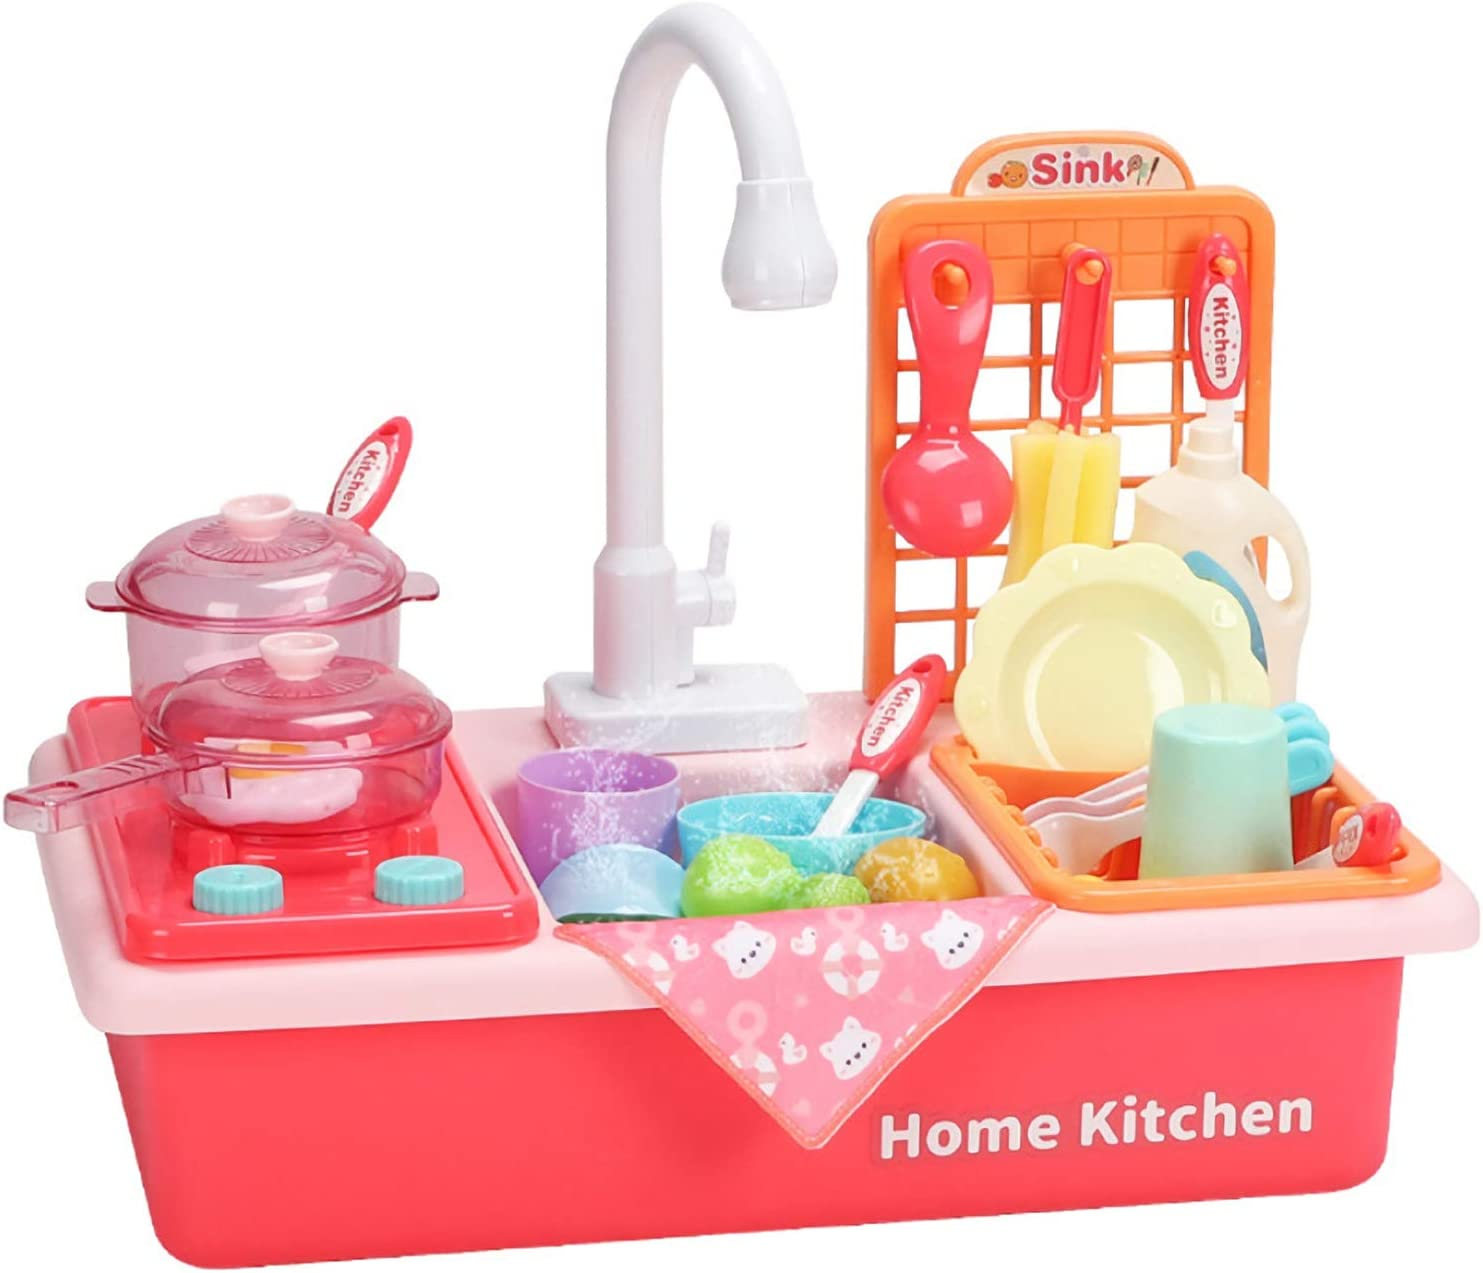 GDOOL Pretend Play Kitchen Sink Toys , Pot and Pan with Spray Realistic Light and Sound, Dish Rack & Play Food, Utensils Tableware Accessories for Toddlers Kids (Pink)